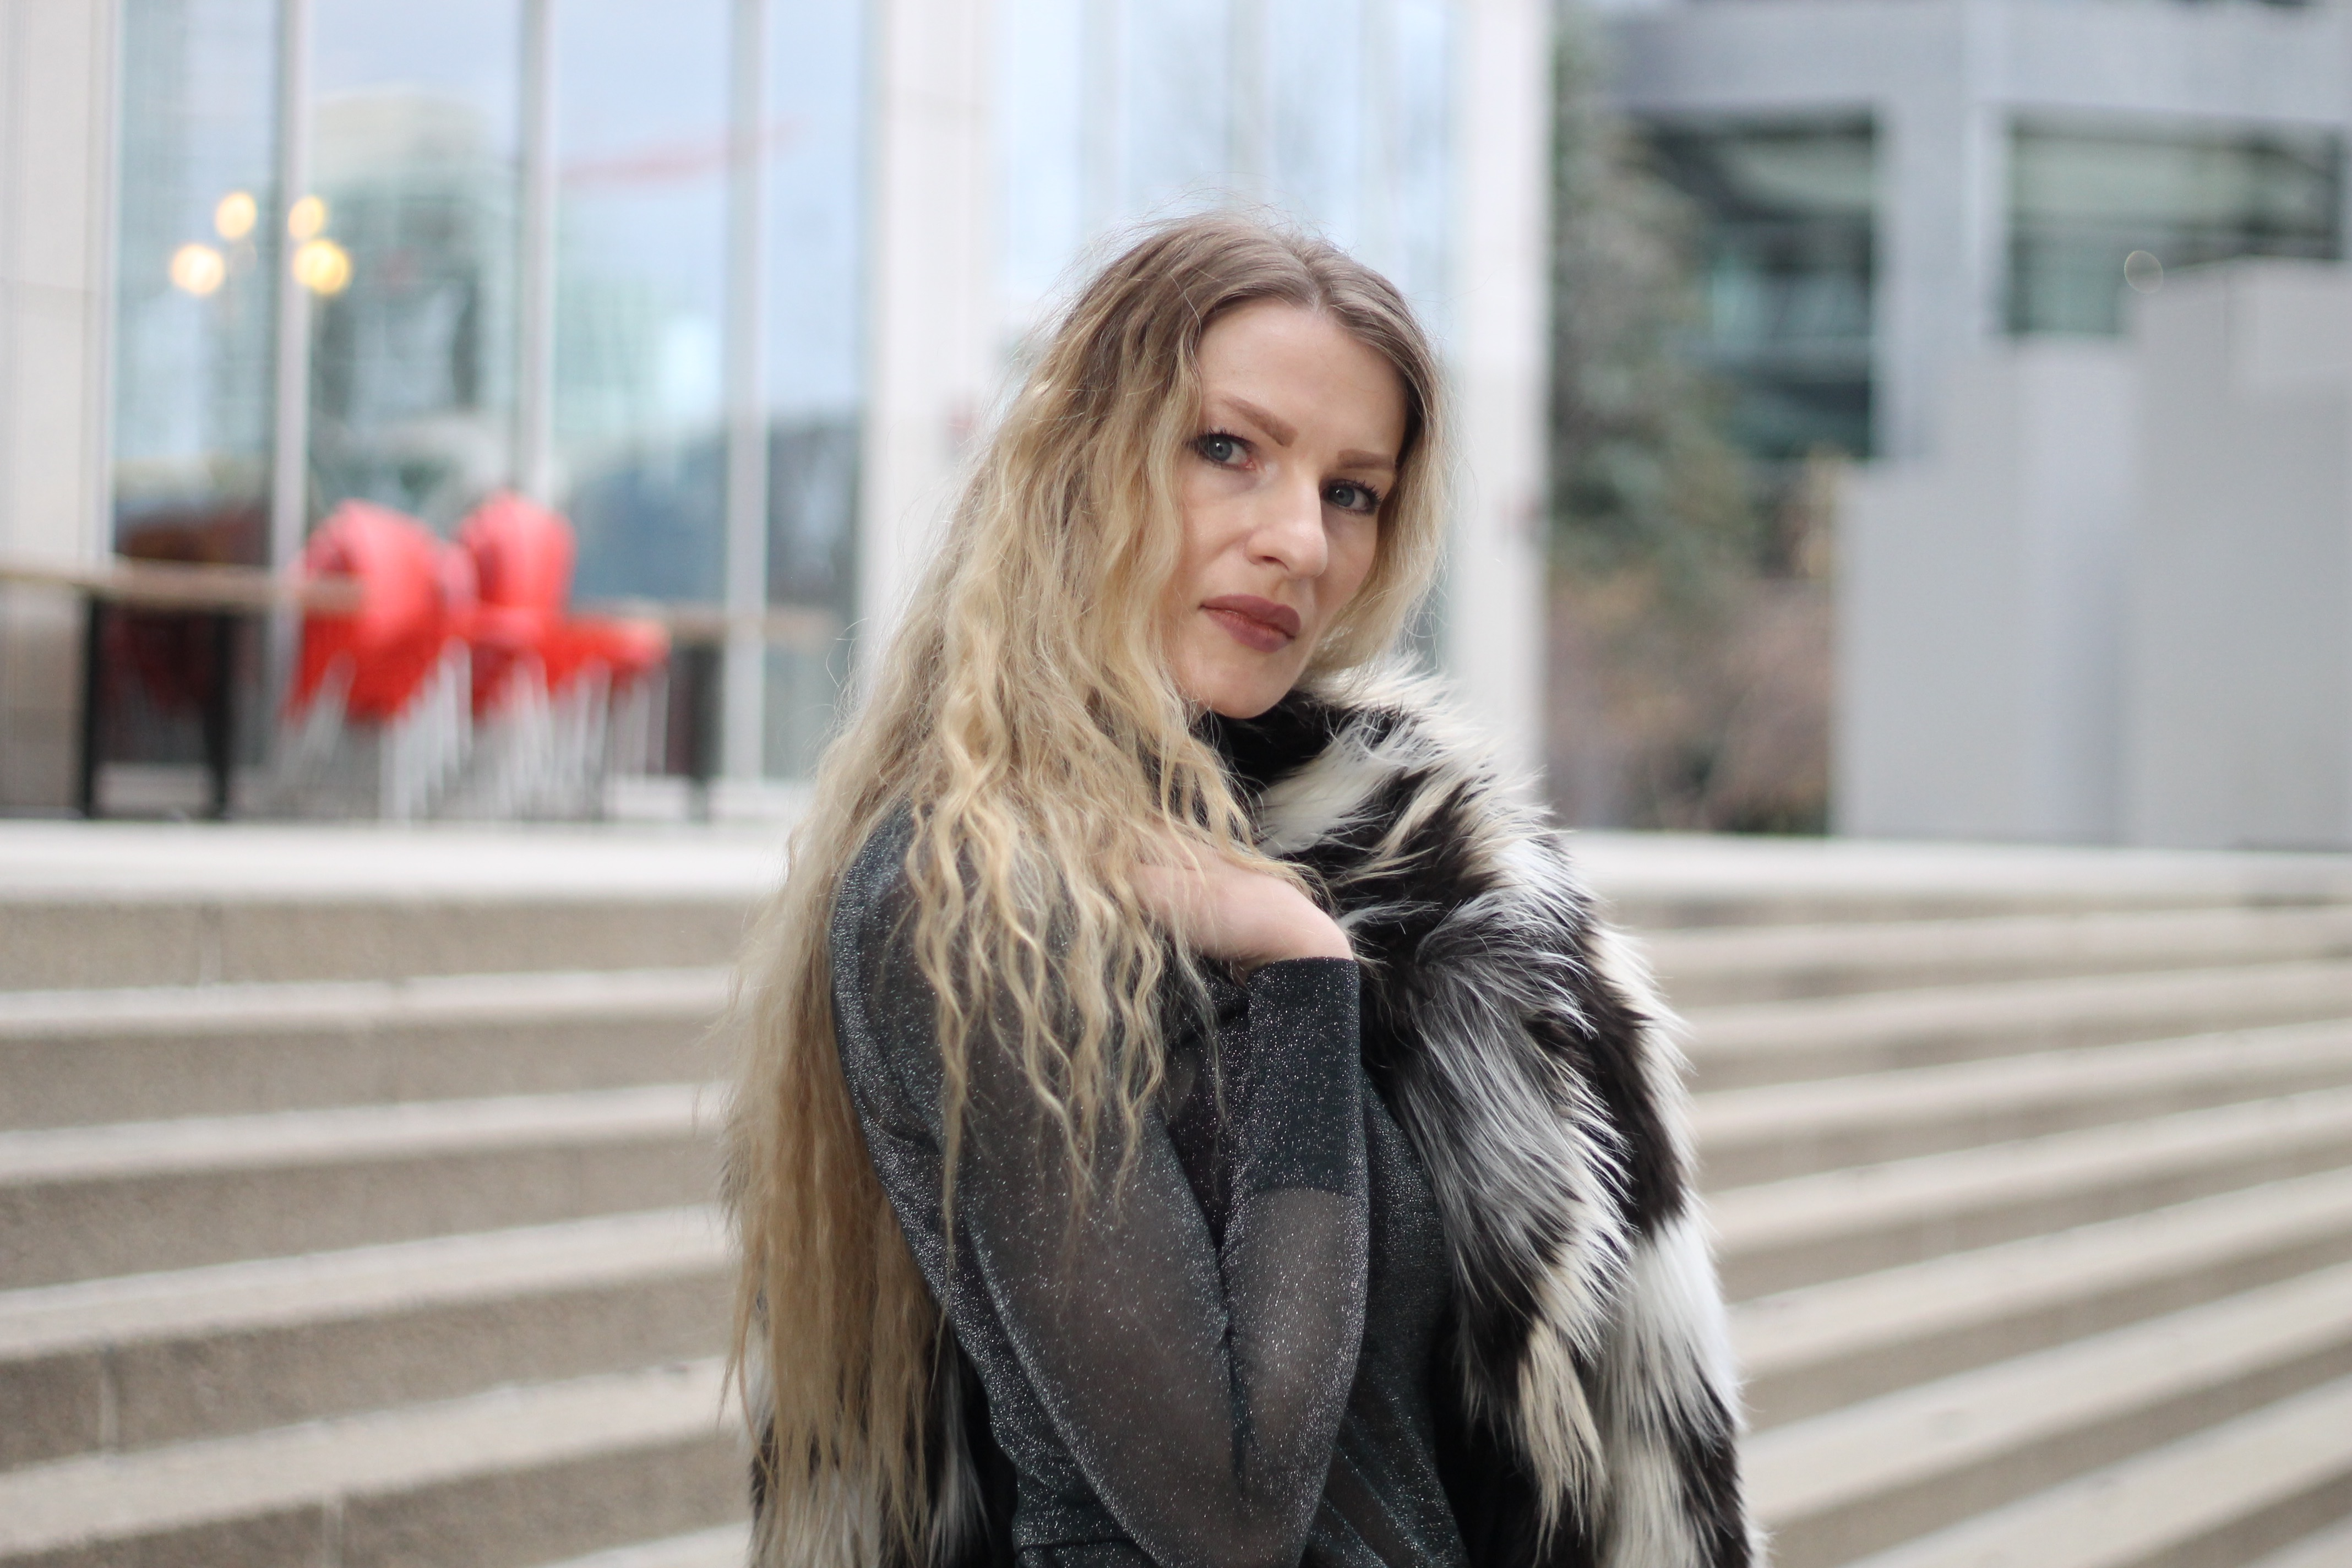 MON MODE | Fashion Blogger | Calgary Street Style | Downtown Calgary | 90s Vibes | Faux Fur